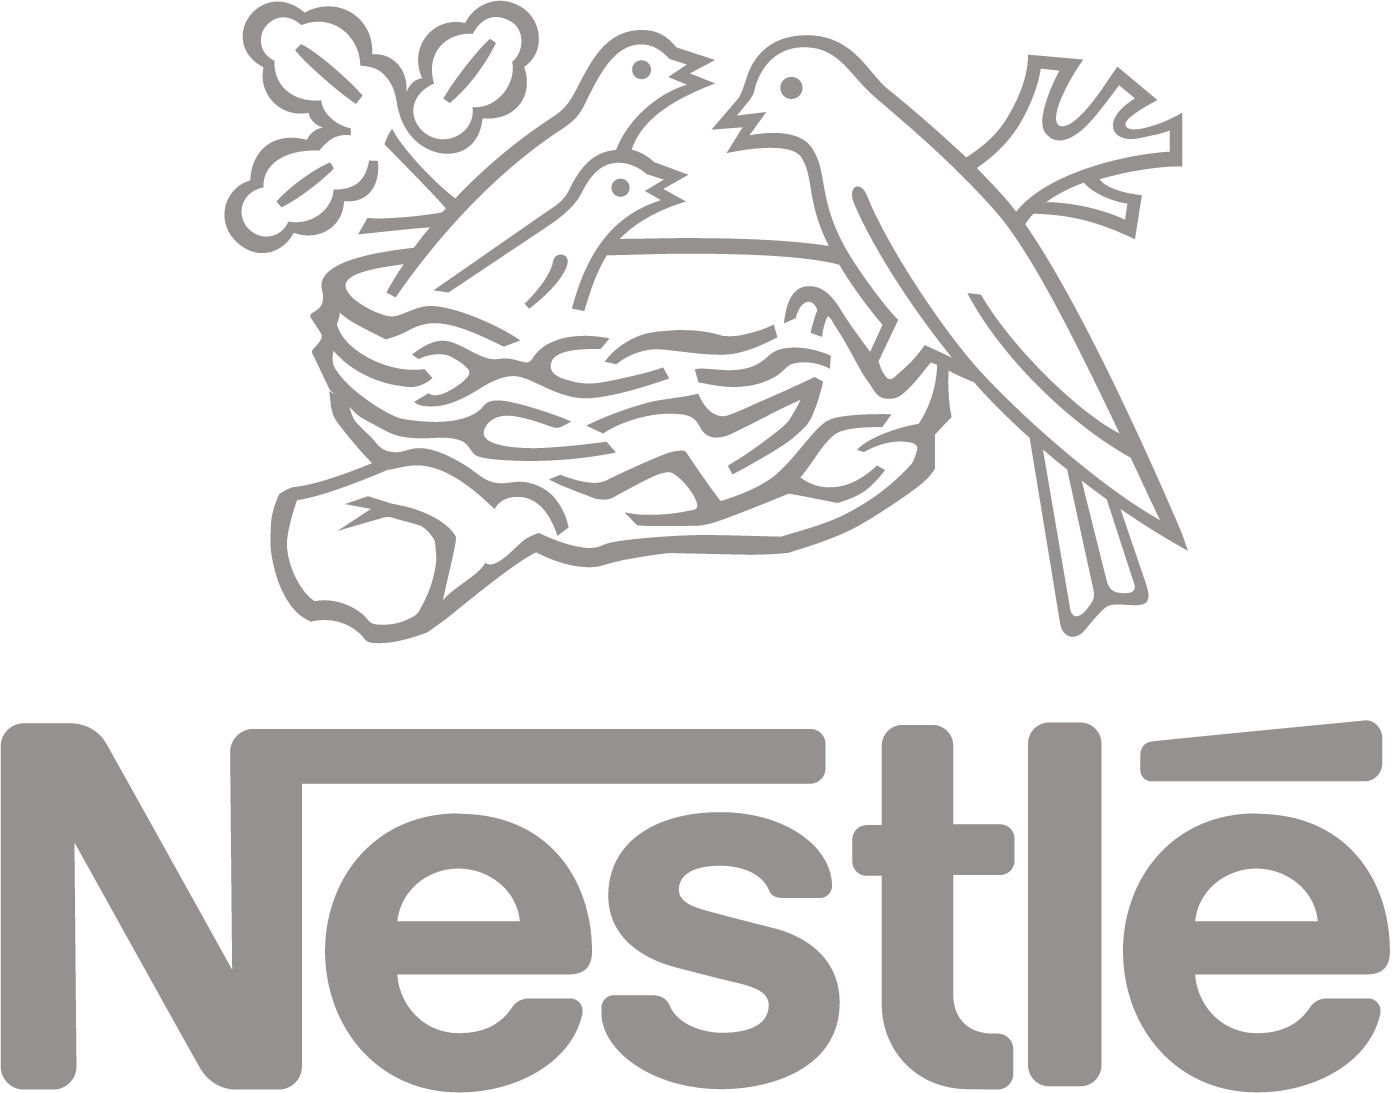 logo-nestle-png--1392.png